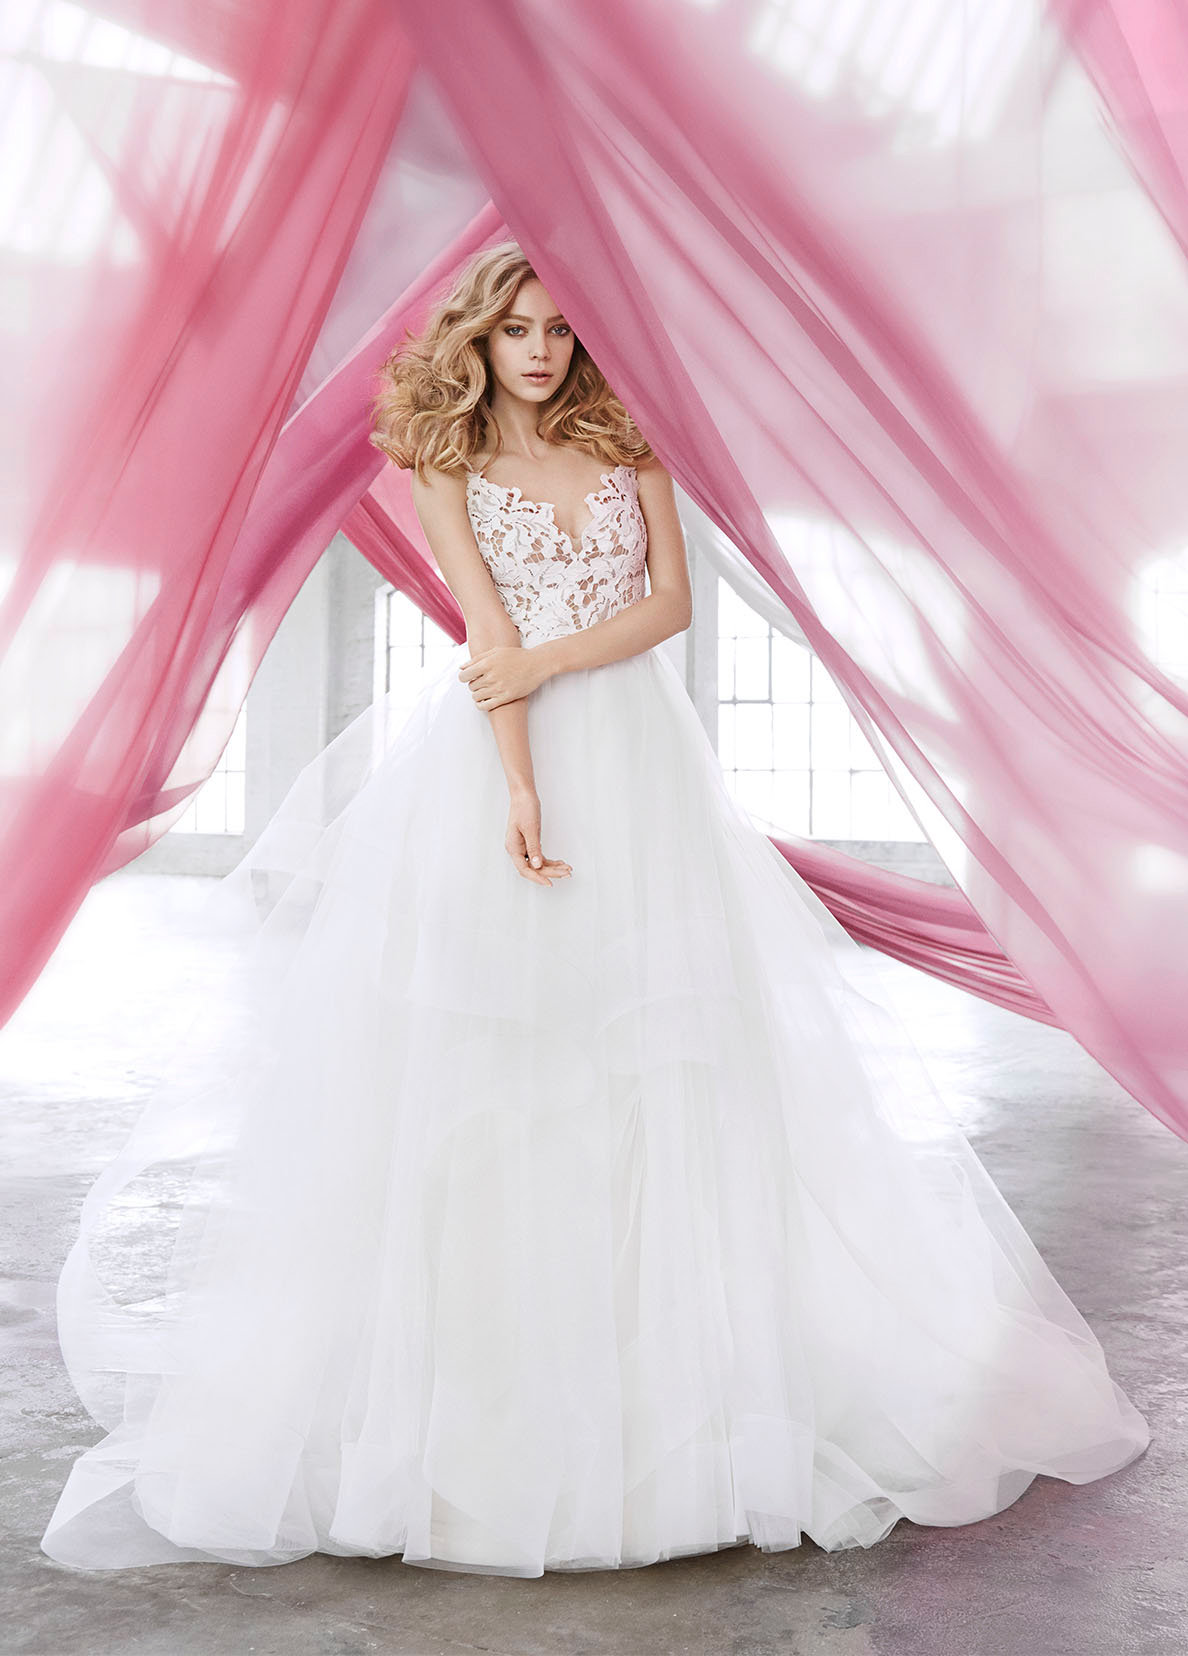 Bridal Gowns And Wedding Dresses By Jlm Couture Style 1600